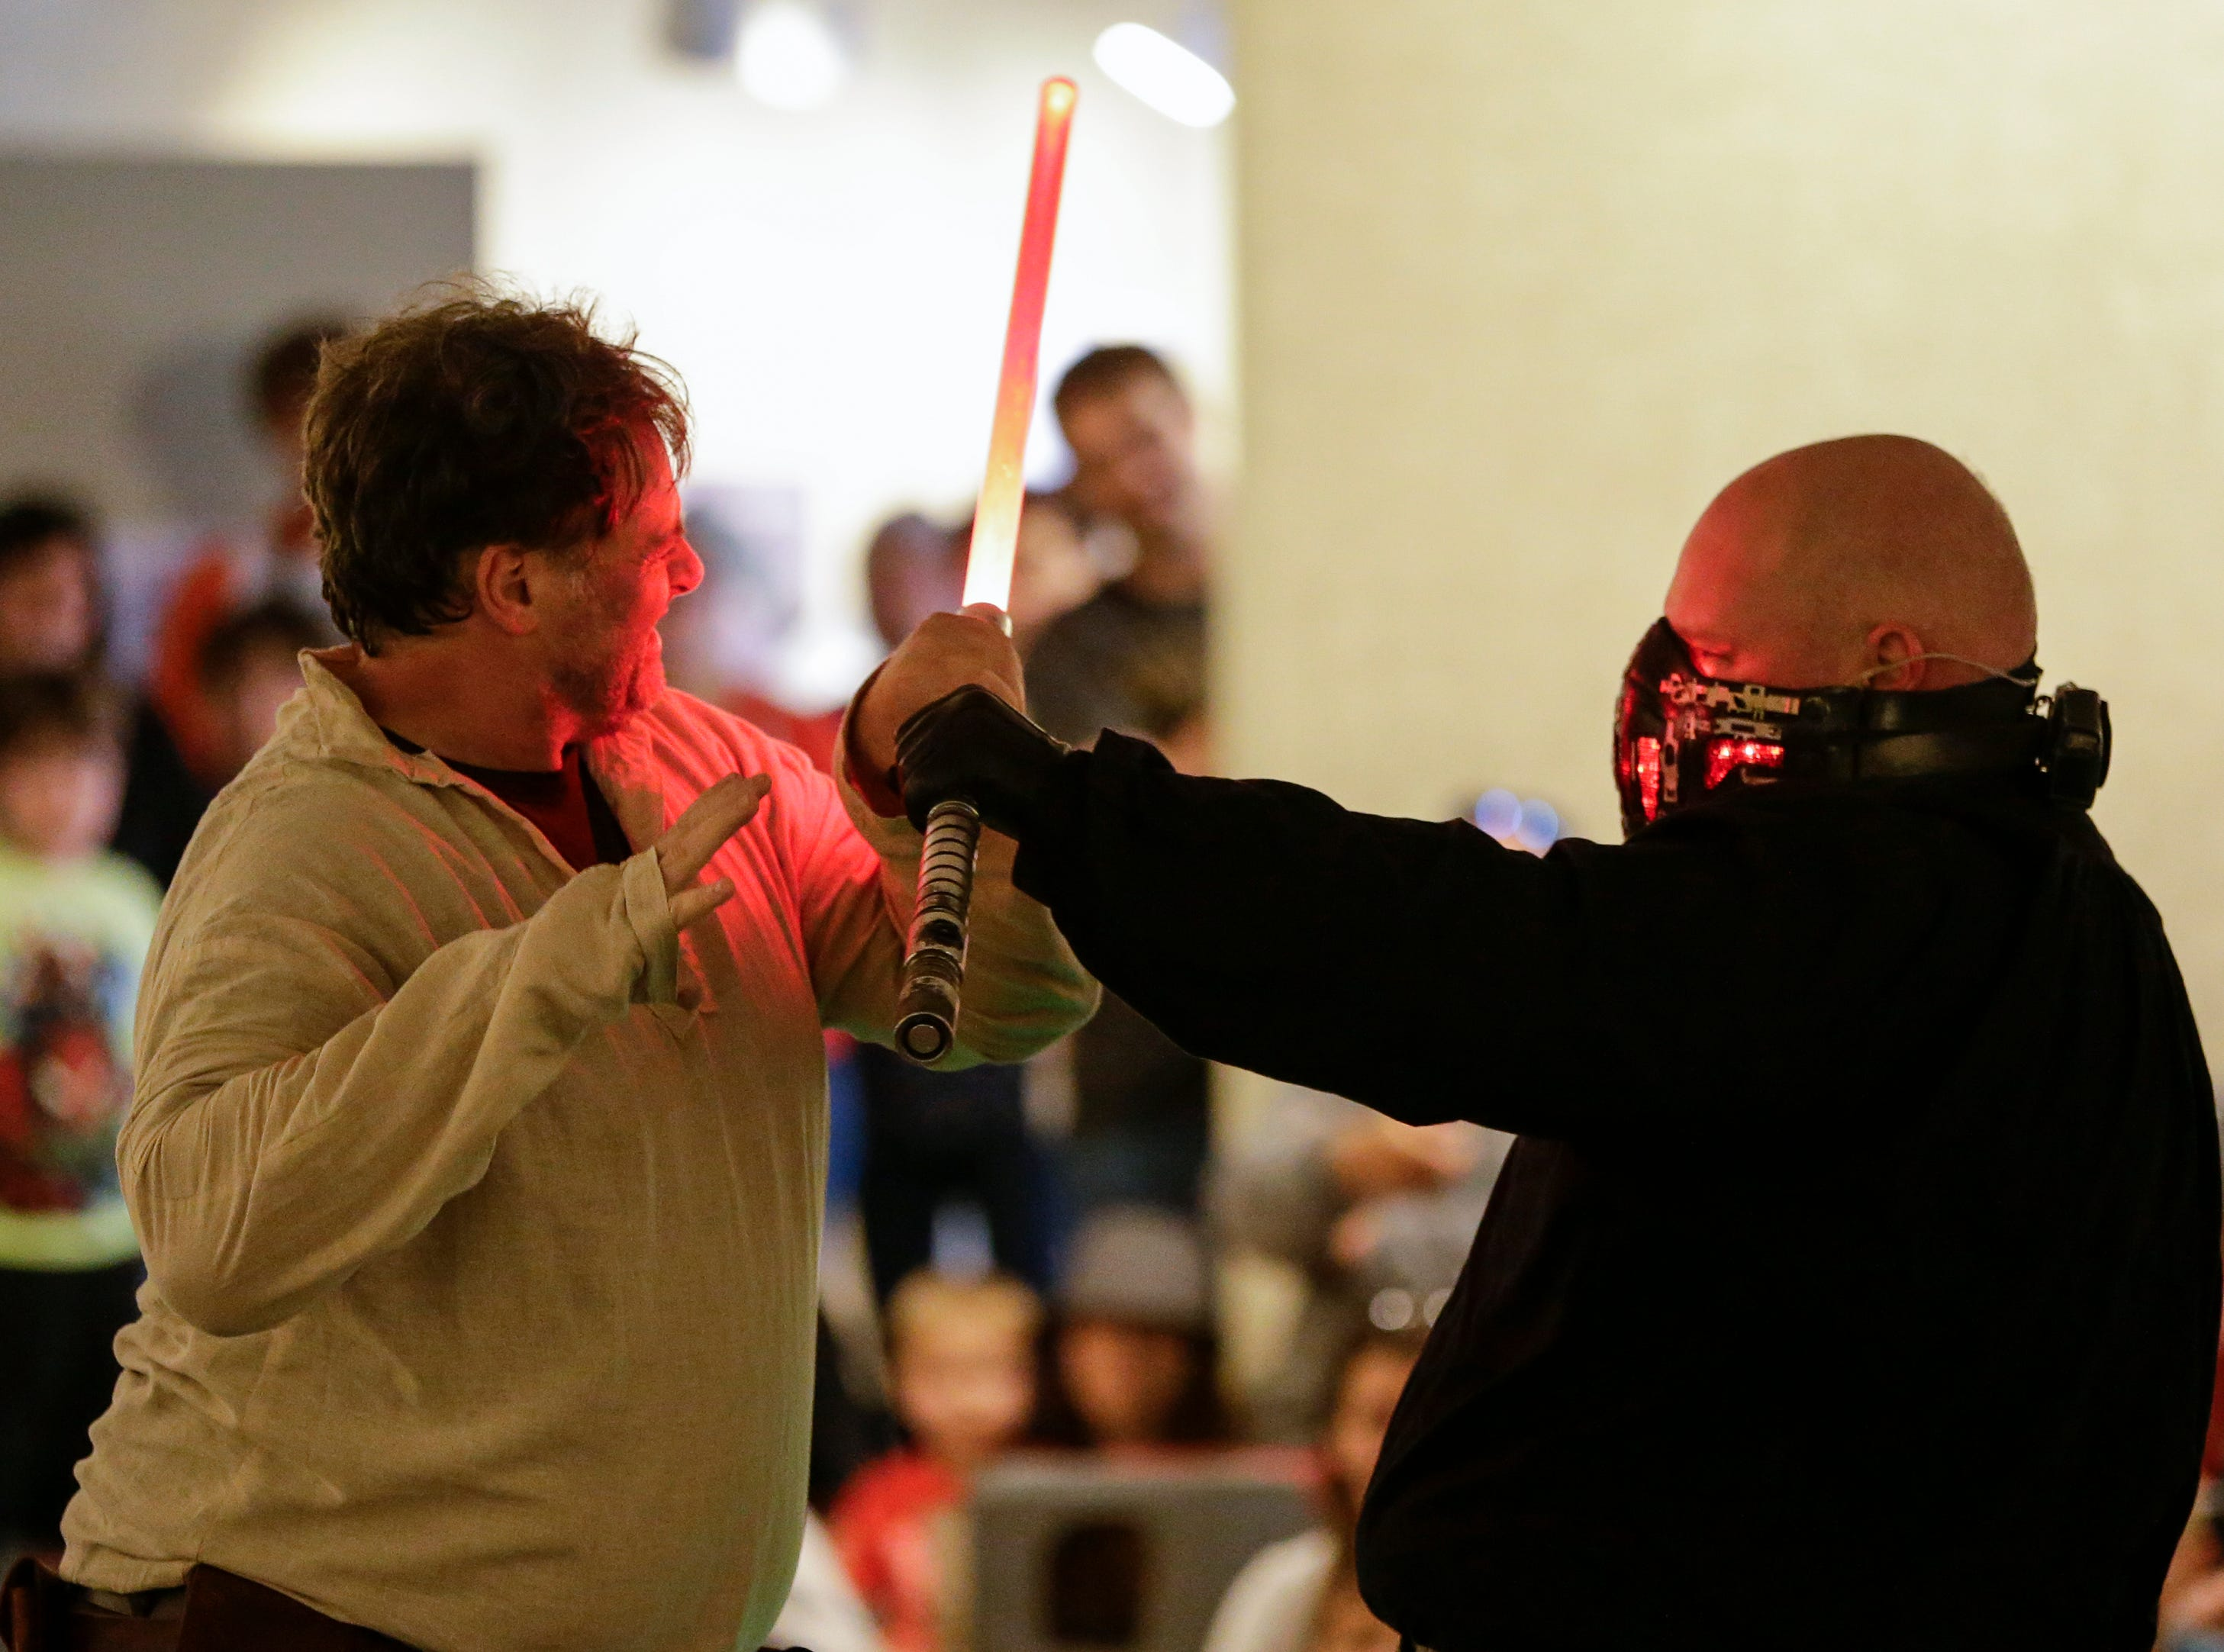 Members of the Rebel Legion battle in a light saber duel during Sputnikfest at the Rahr-West Museum Saturday, September 8, 2018, in Manitowoc, Wis. Josh Clark/USA TODAY NETWORK-Wisconsin